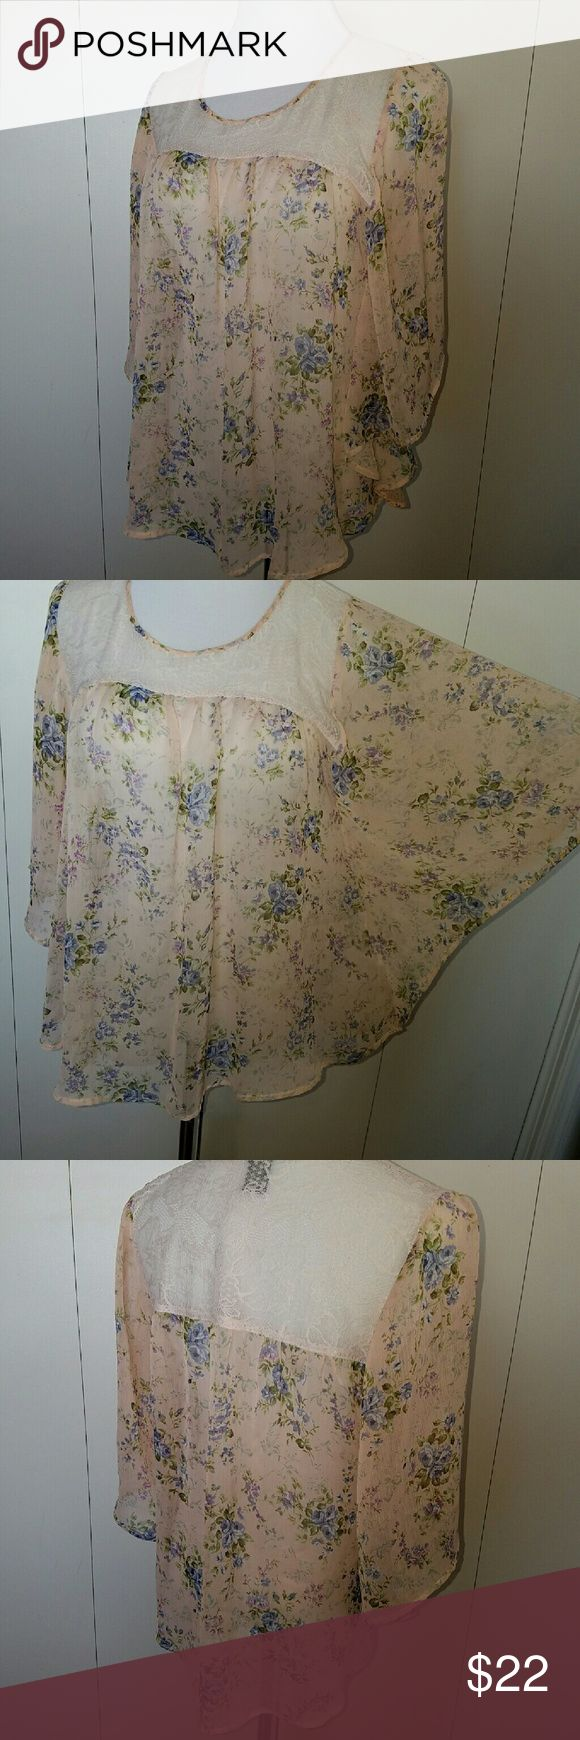 Pale pink floral/lace batwing top Feminine pink and floral batwing blouse  Fabric is sheer and gauzy with lace insert on front and back.  Colors may appear different in person compared to digital screens. Living Doll Tops